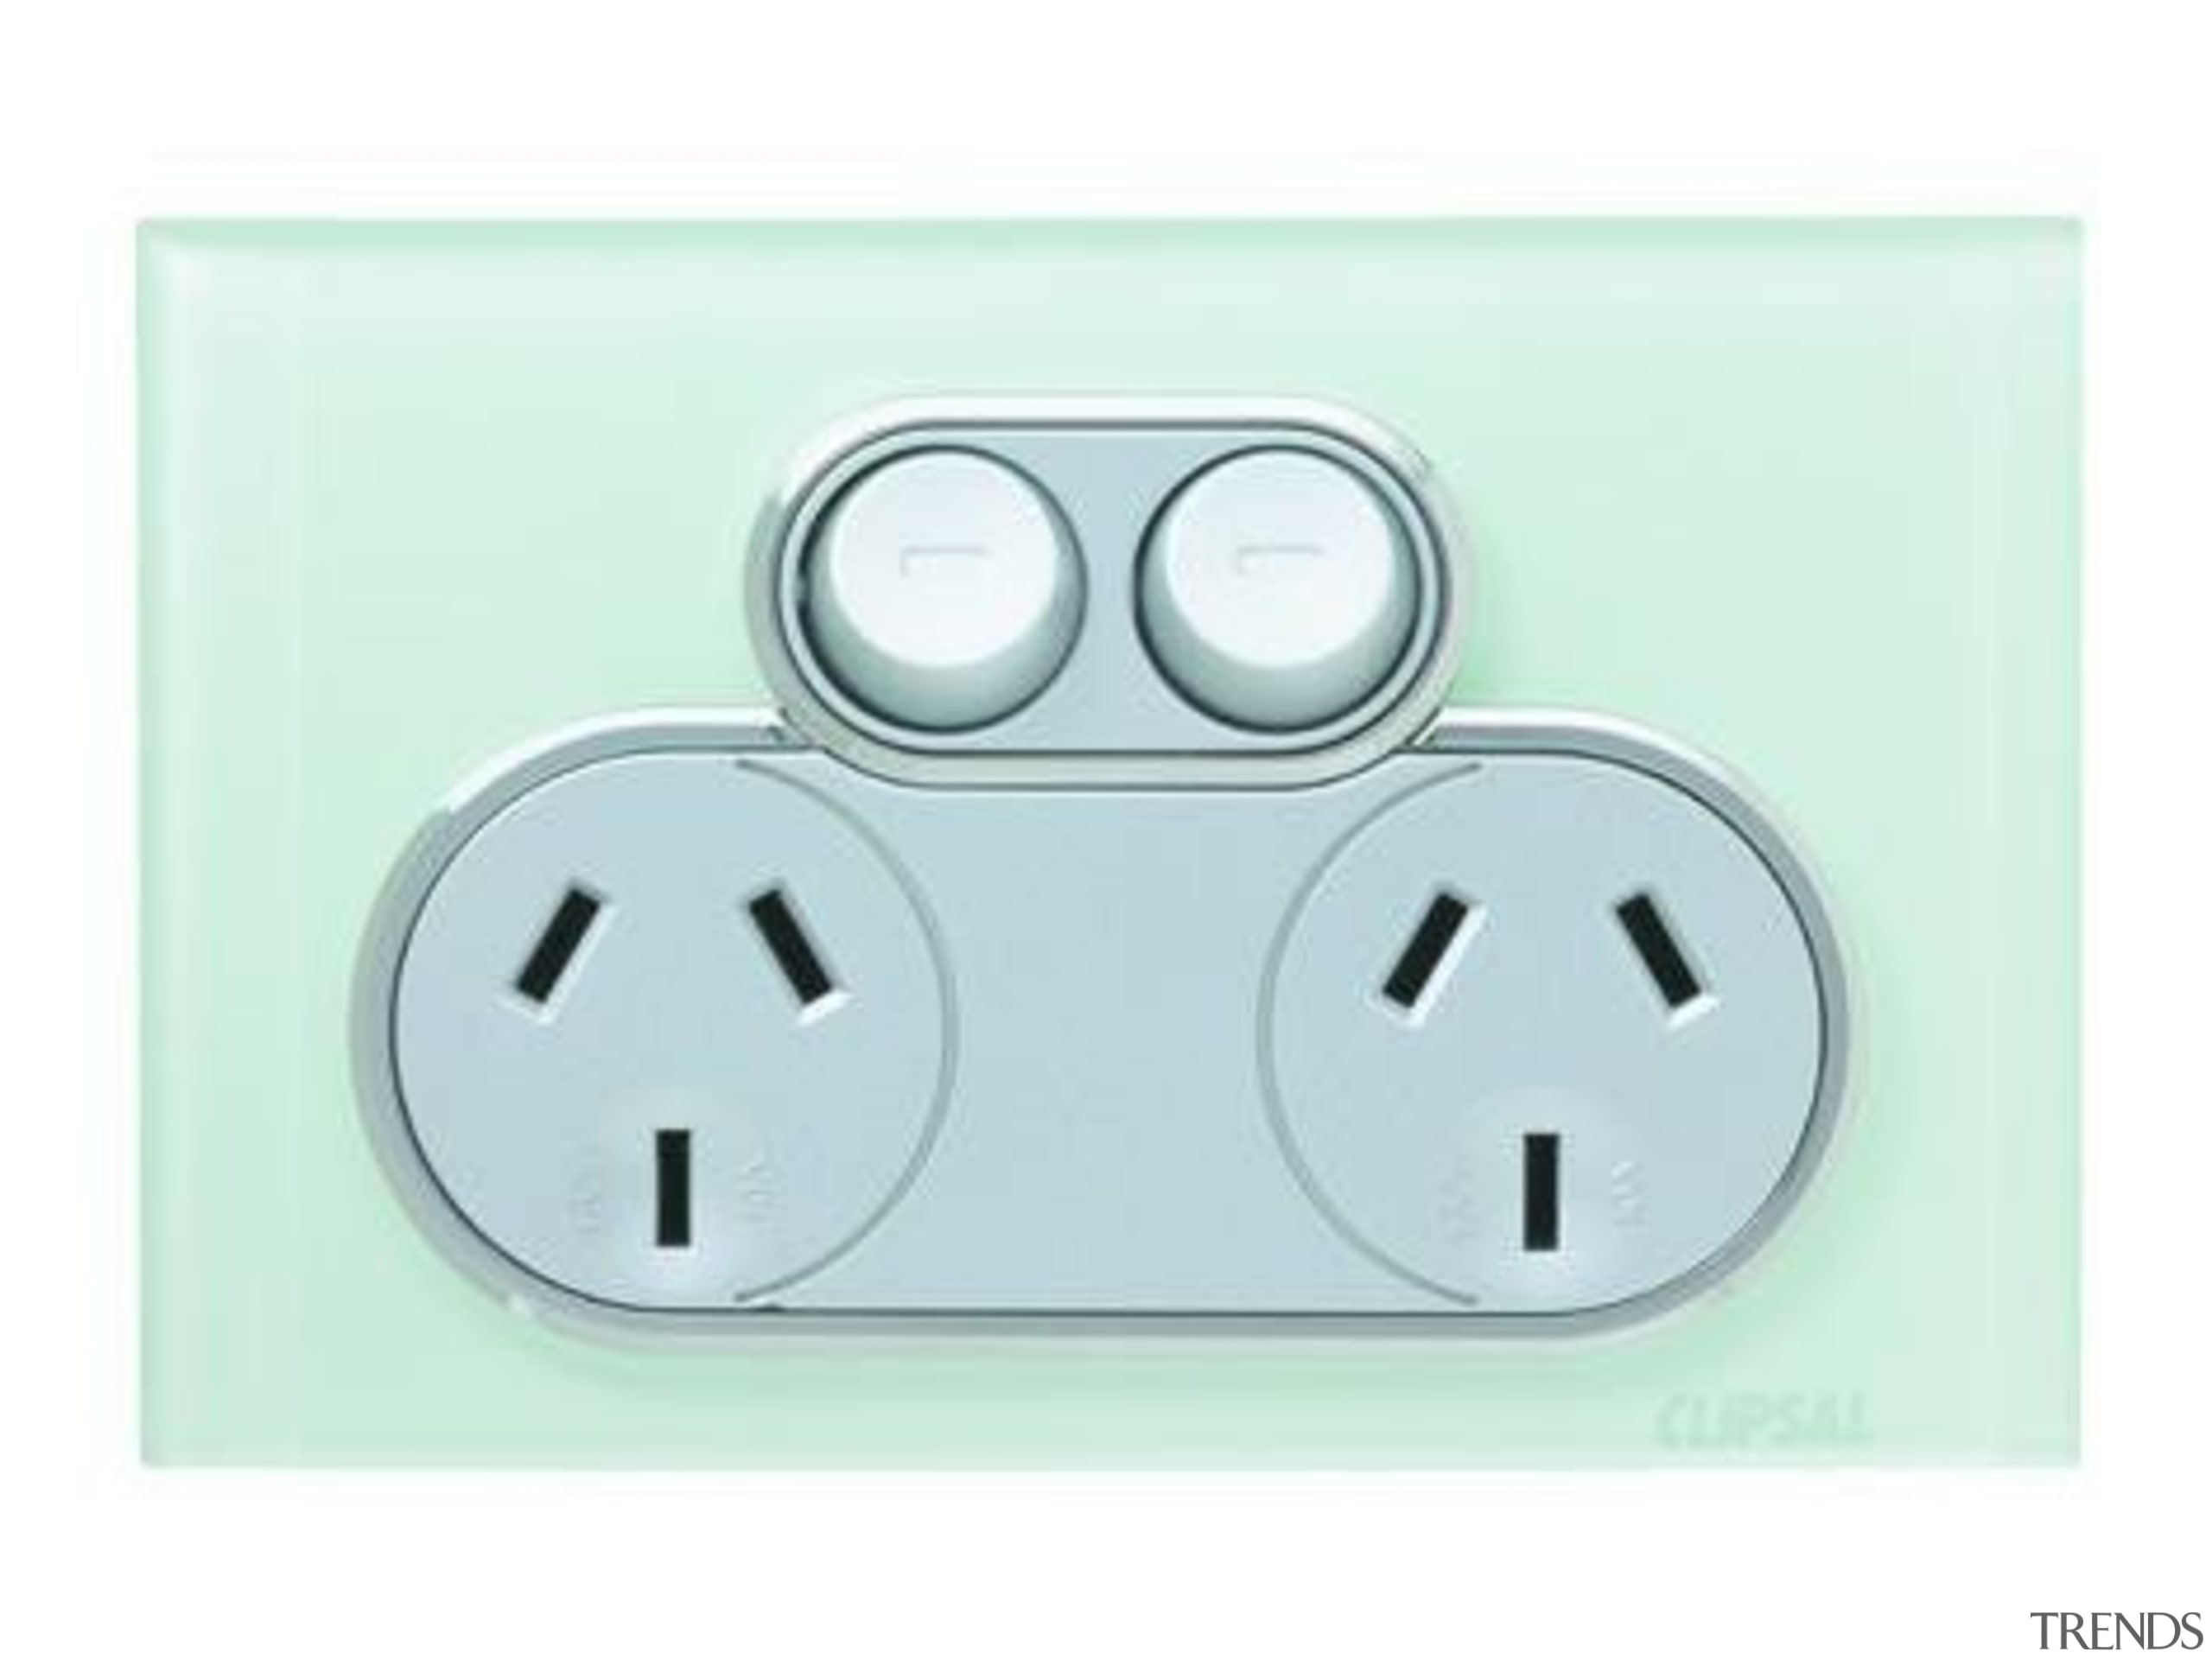 Saturn 250V power point / double socket Ocean ac power plugs and socket outlets, electronics accessory, technology, white